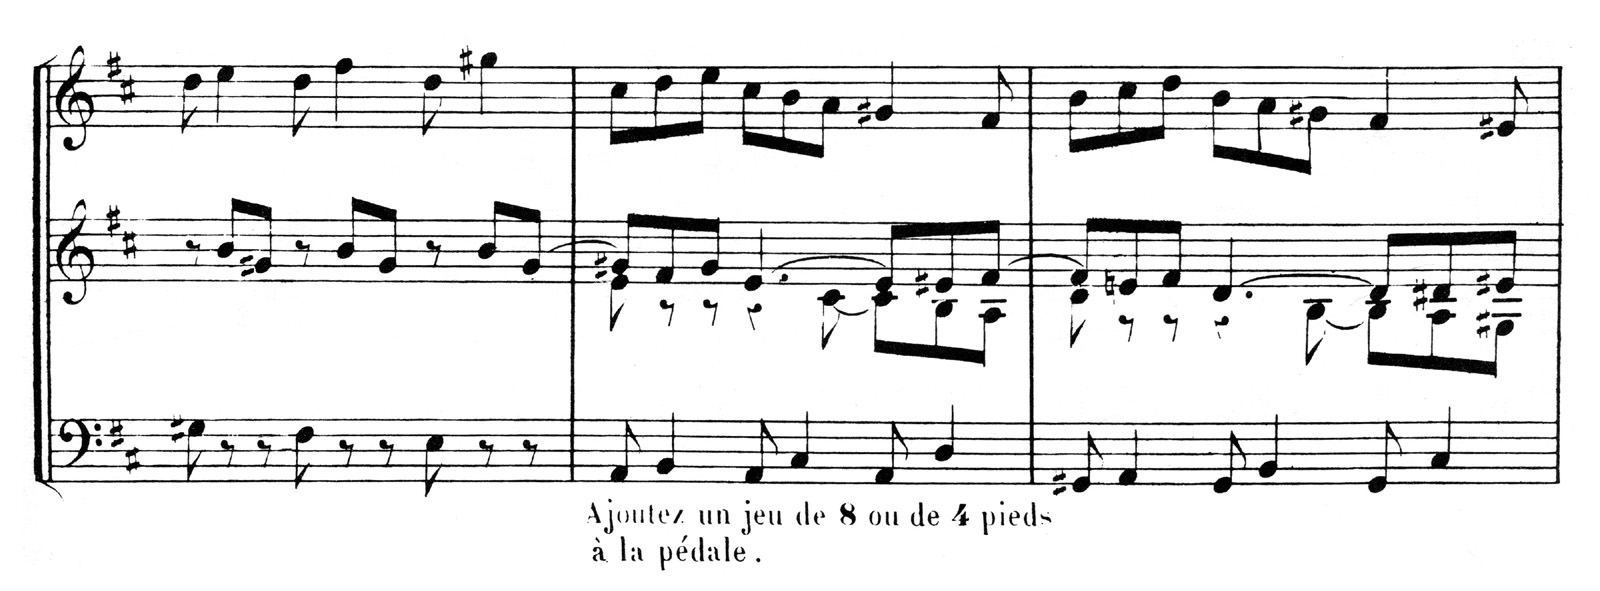 César Franck old edition compared with modern engraving : beams are a bit to thick, accidentals are not clear enough due to bad resolution (César Franck : Prélude, Fugue et Variation)